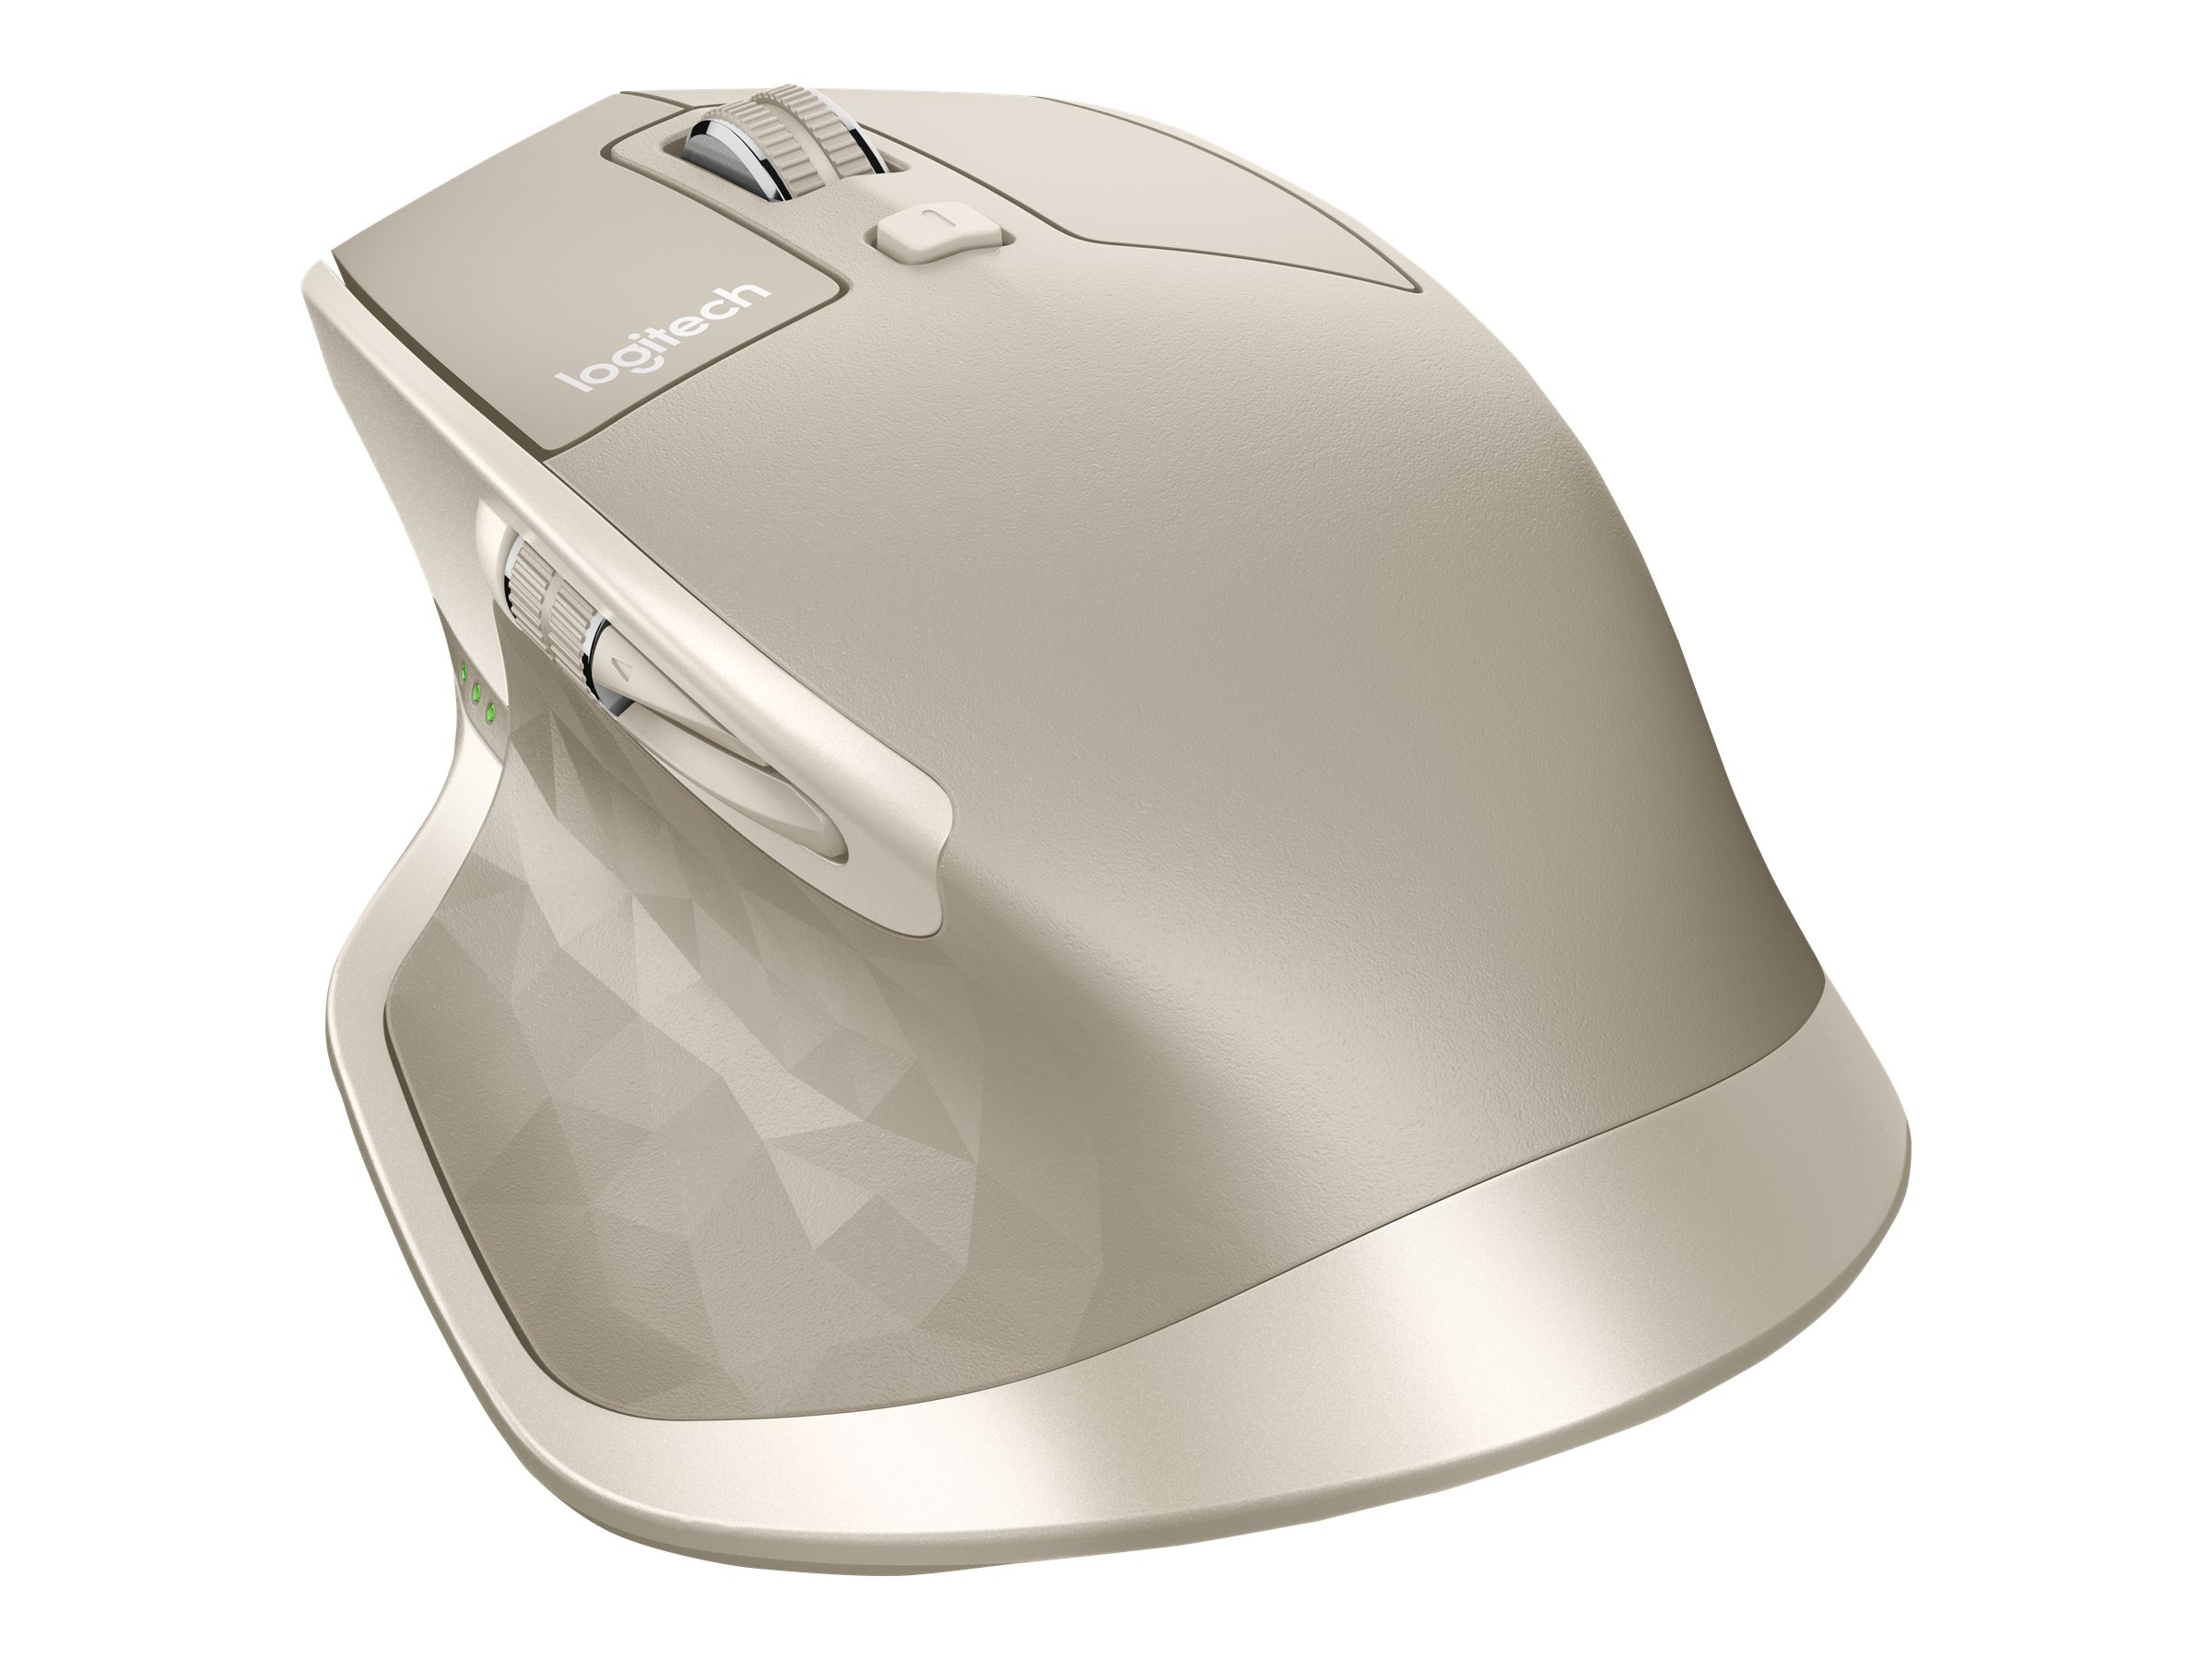 Logitech MX Master Wireless Mouse, Stone, 910-004956